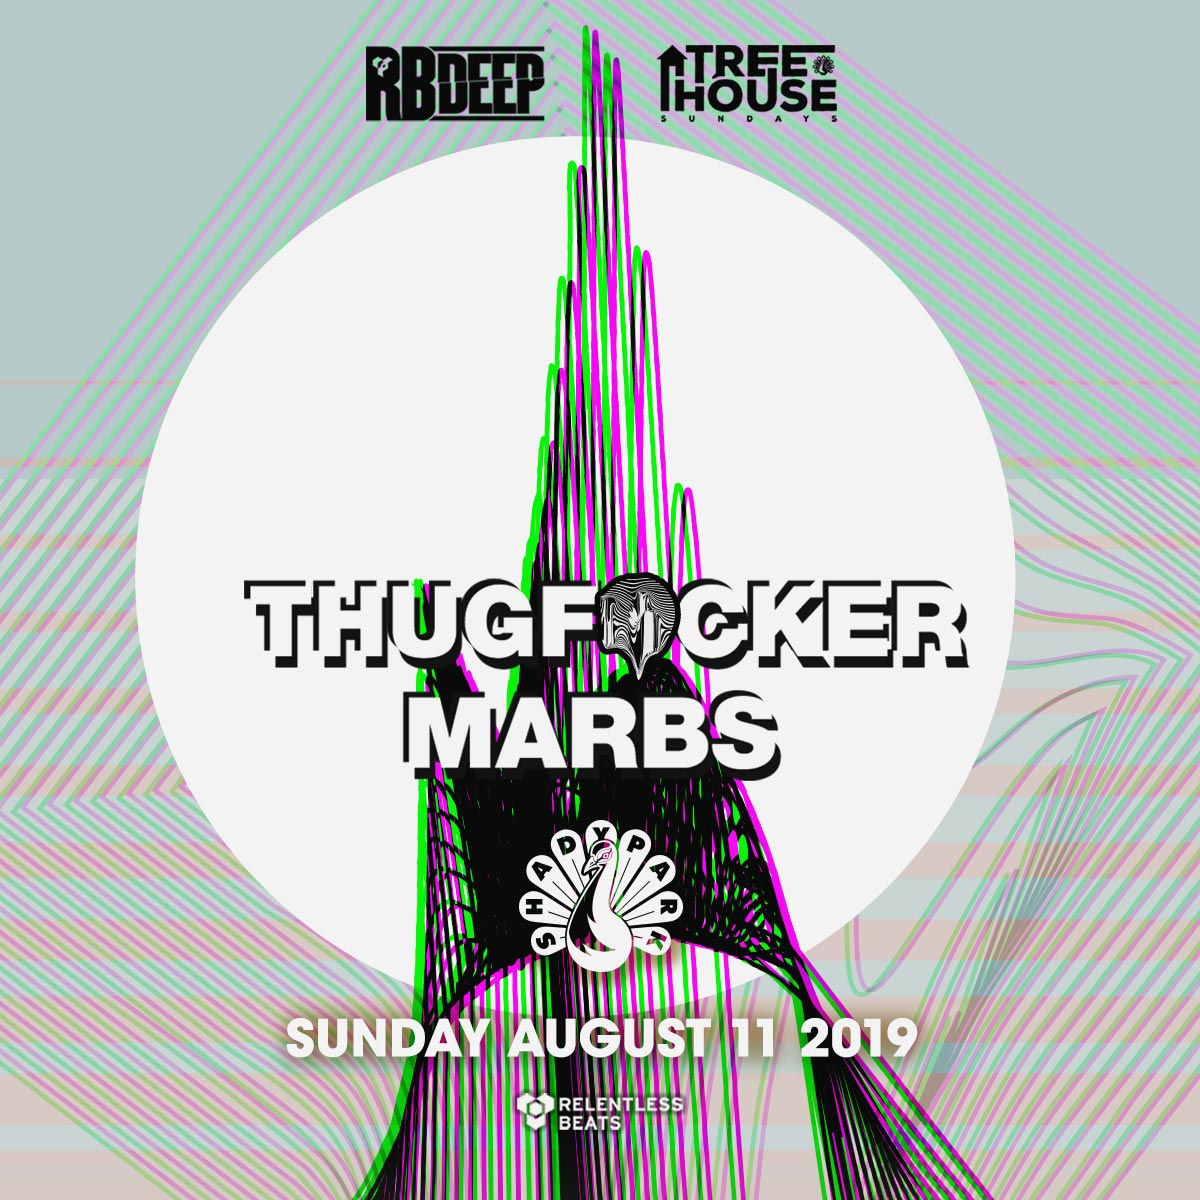 Flyer for Thugfucker + Marbs